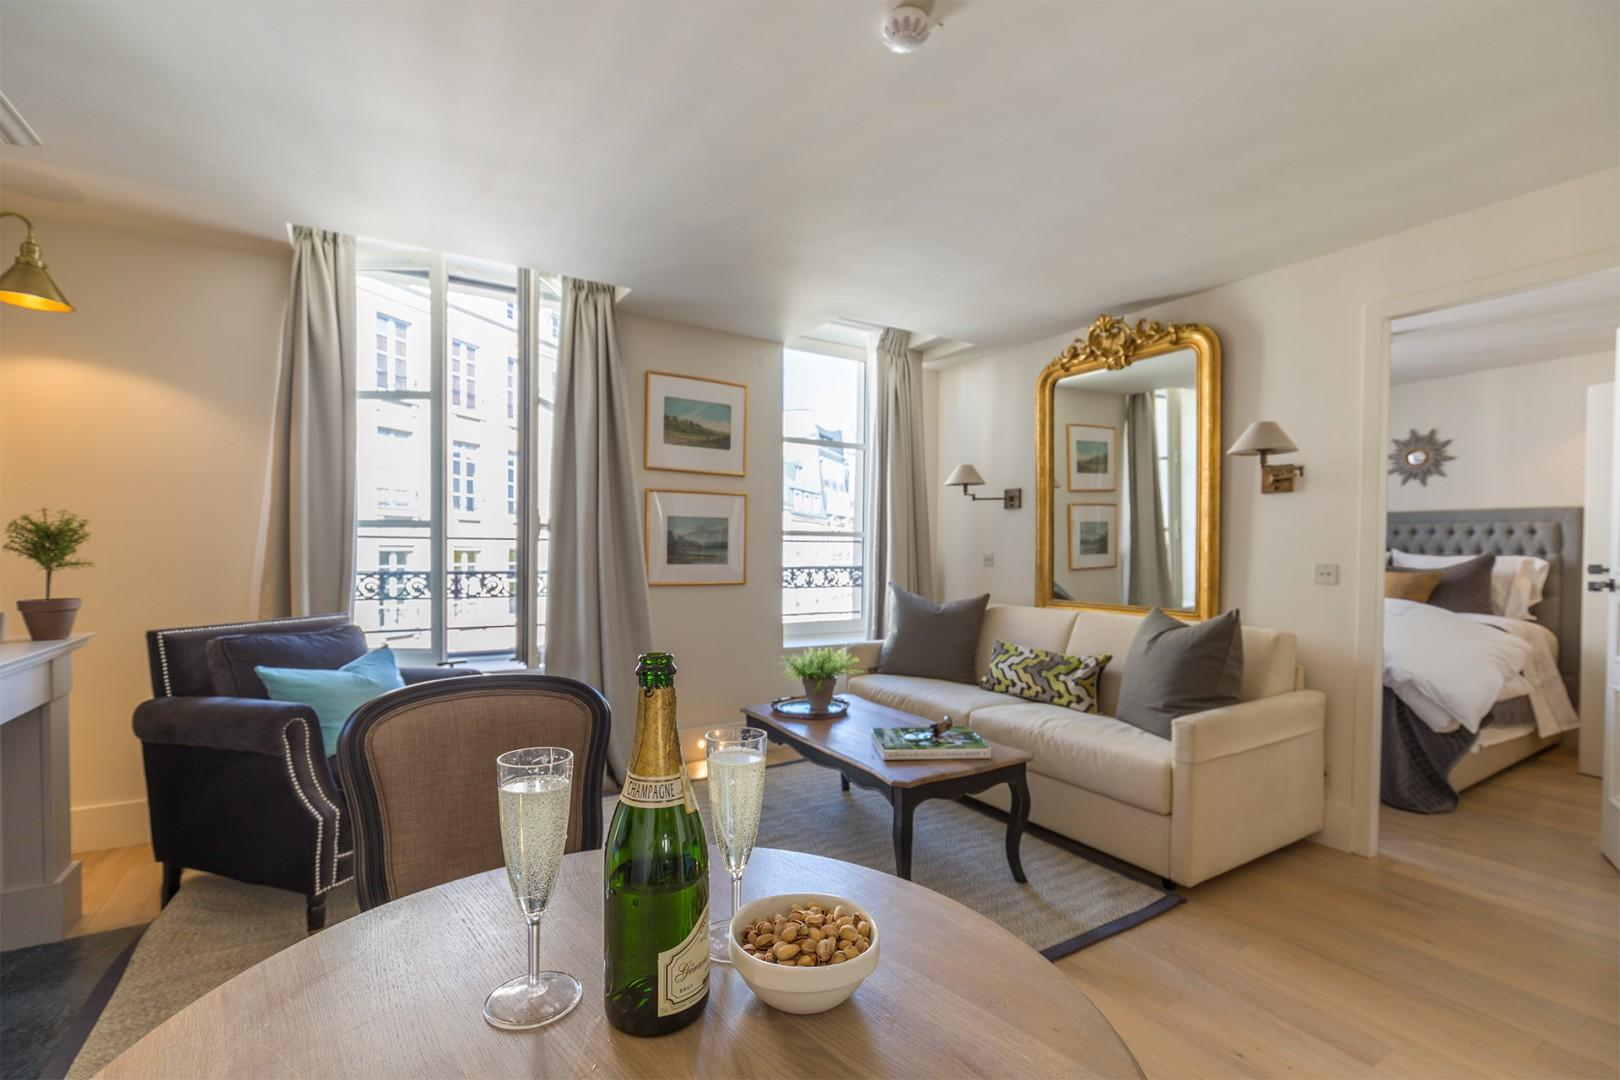 You are sure to have a comfortable stay in Paris at the Loupiac!